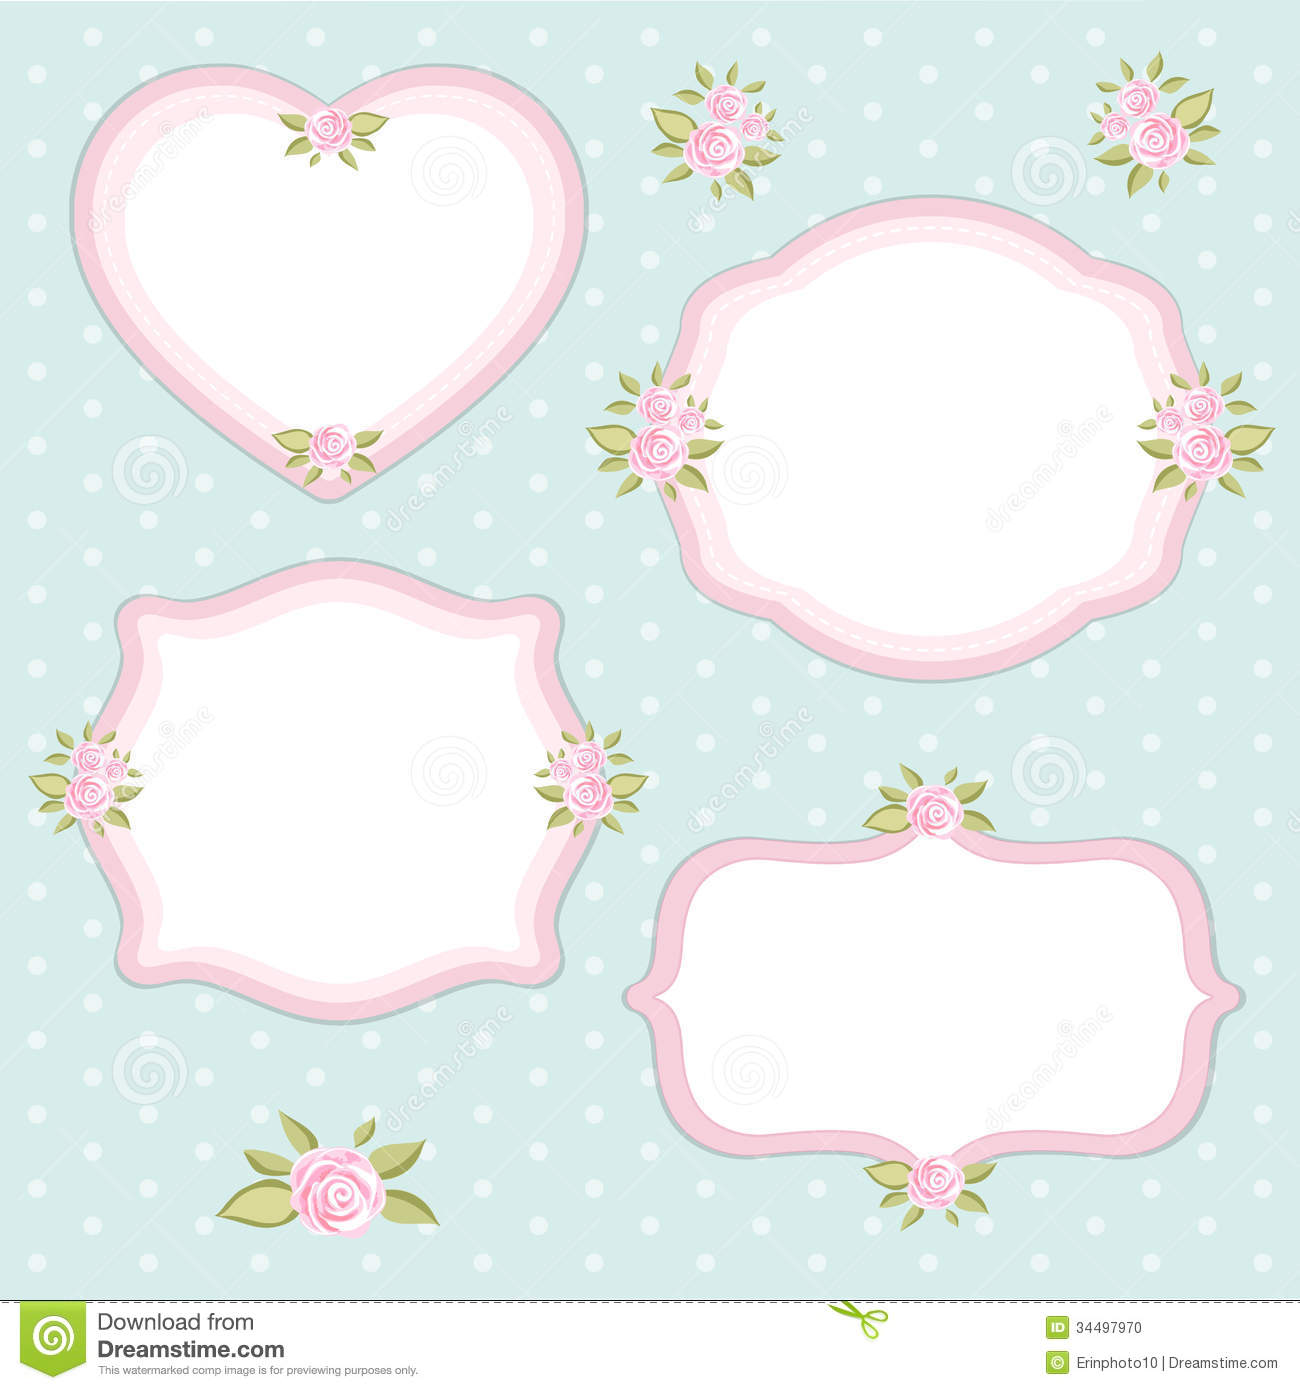 Vintage Frames Set Stock Vector Illustration Of Element 34497970